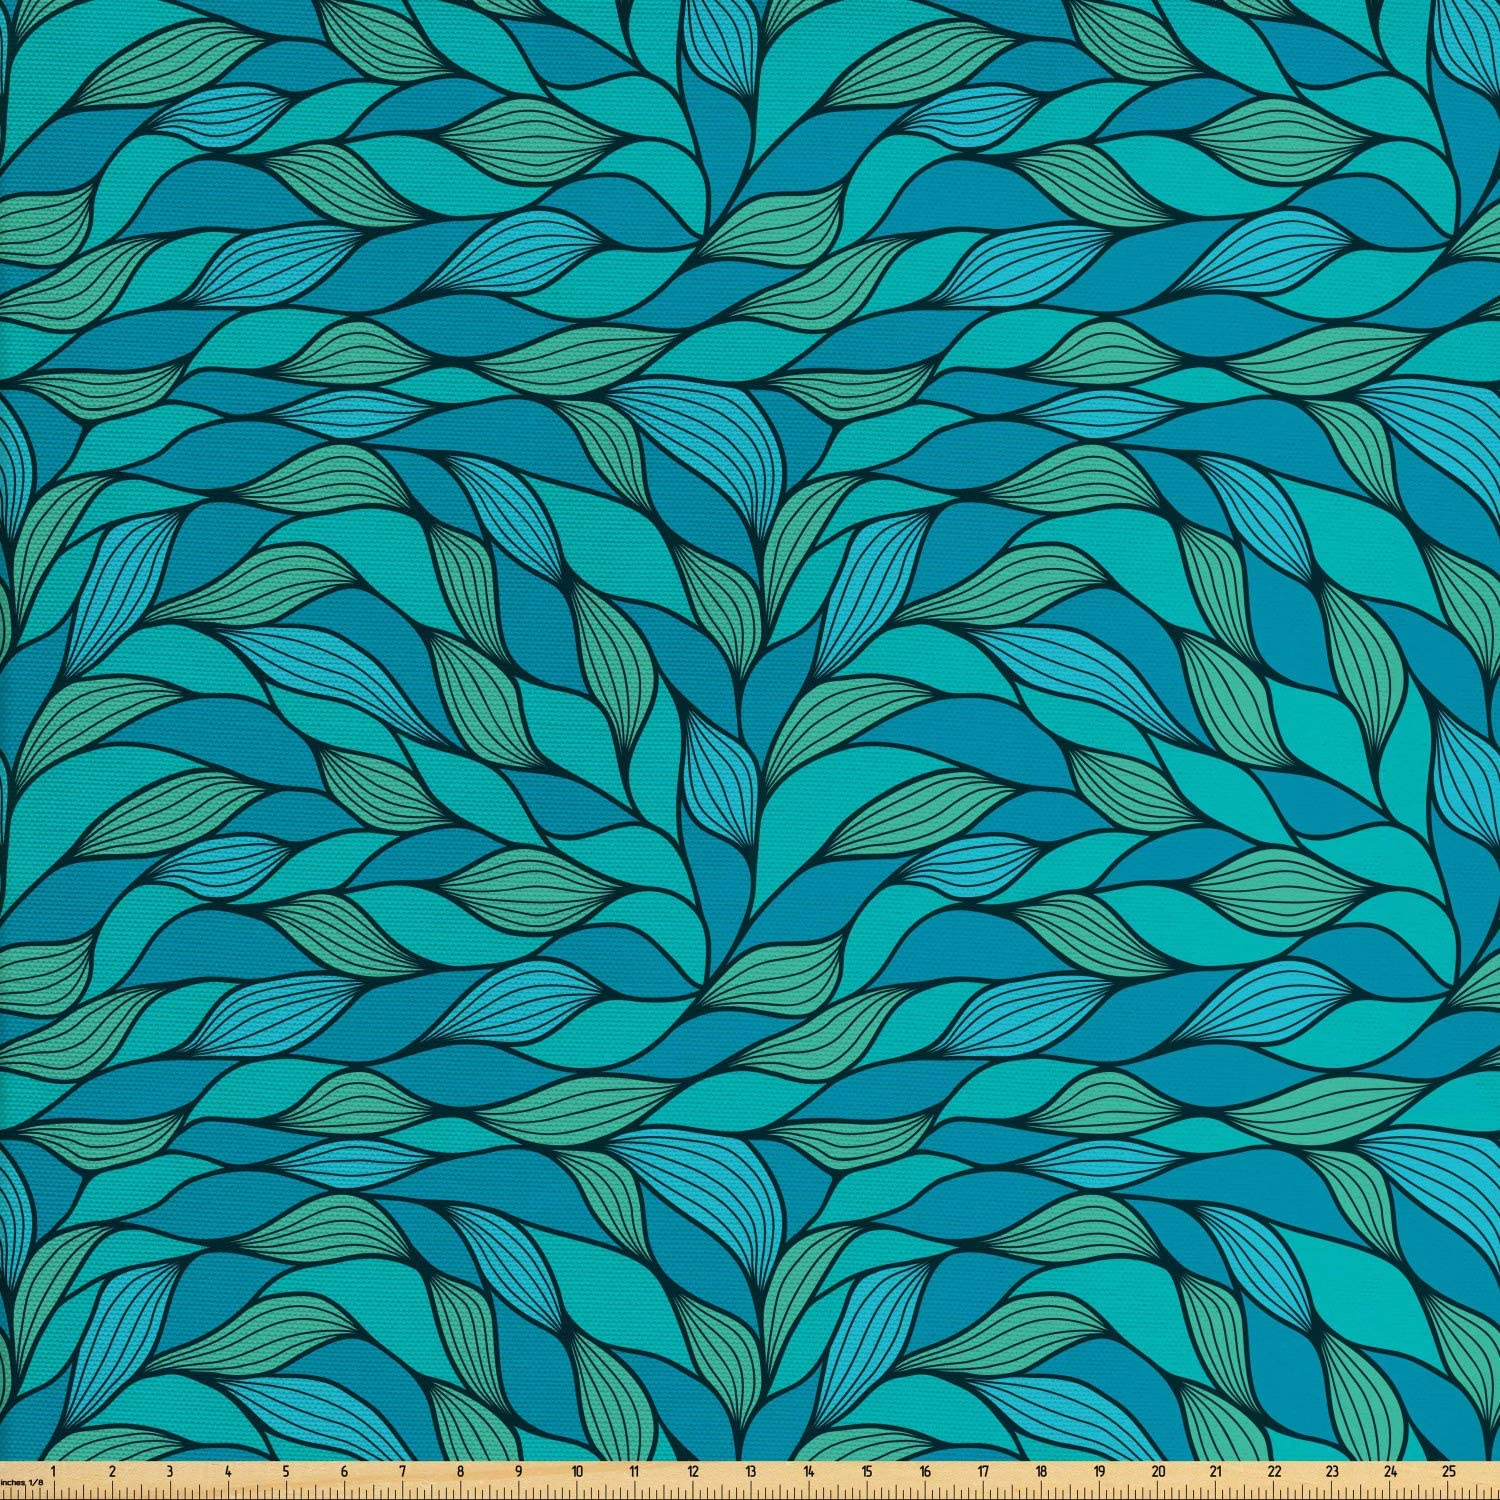 Ambesonne Teal Fabric by The Yard, Abstract Wave Design with Different Colors Ocean Themed Marine Life Pattern Print, Decorative Fabric for Upholstery and Home Accents, 3 Yards, Mint Green